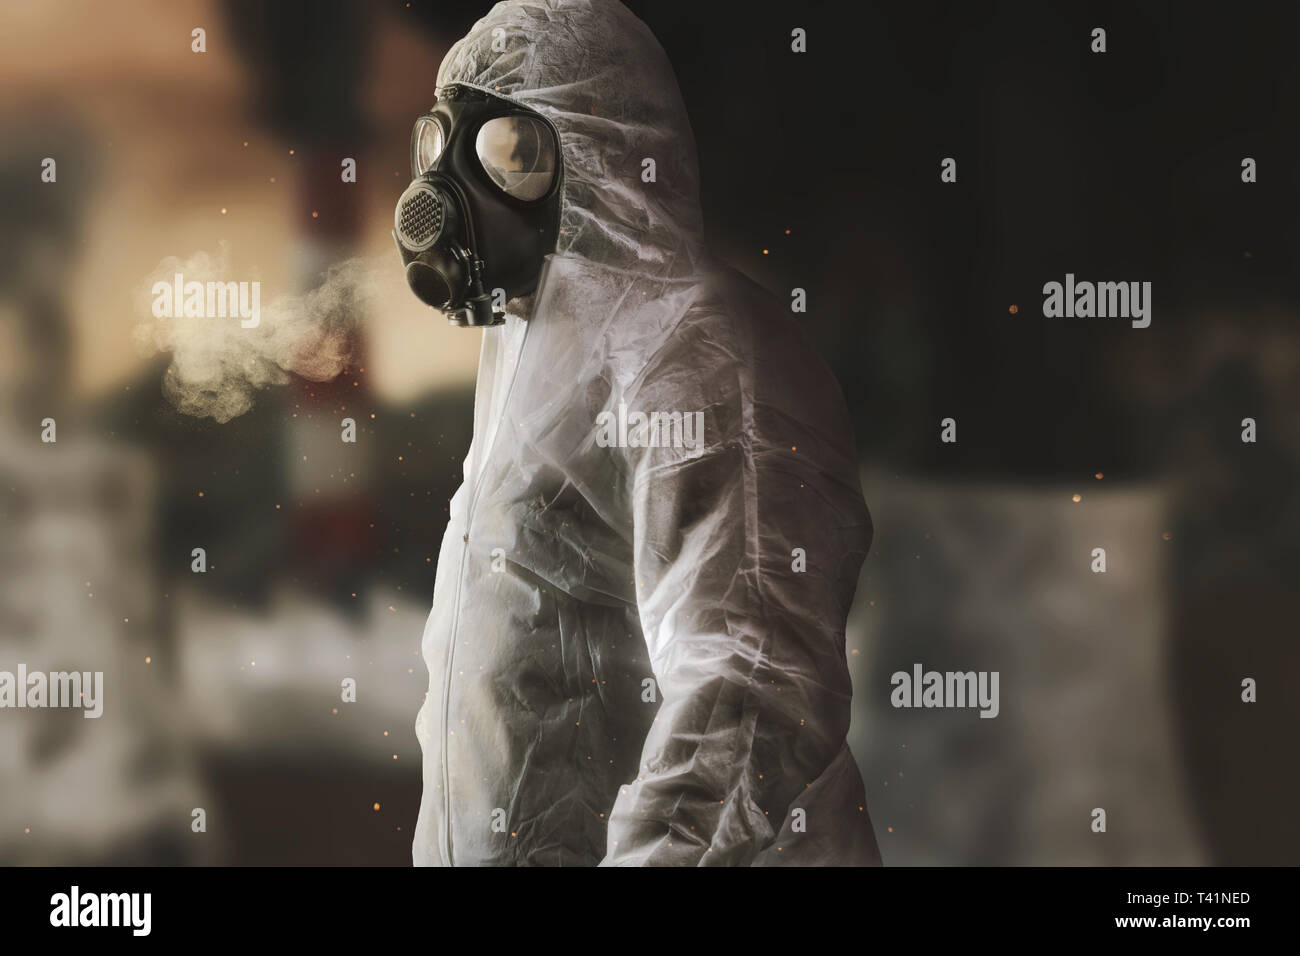 survivor with white overall and gas mask in front of blurred incineration plant and apocalyptic environment - Stock Image